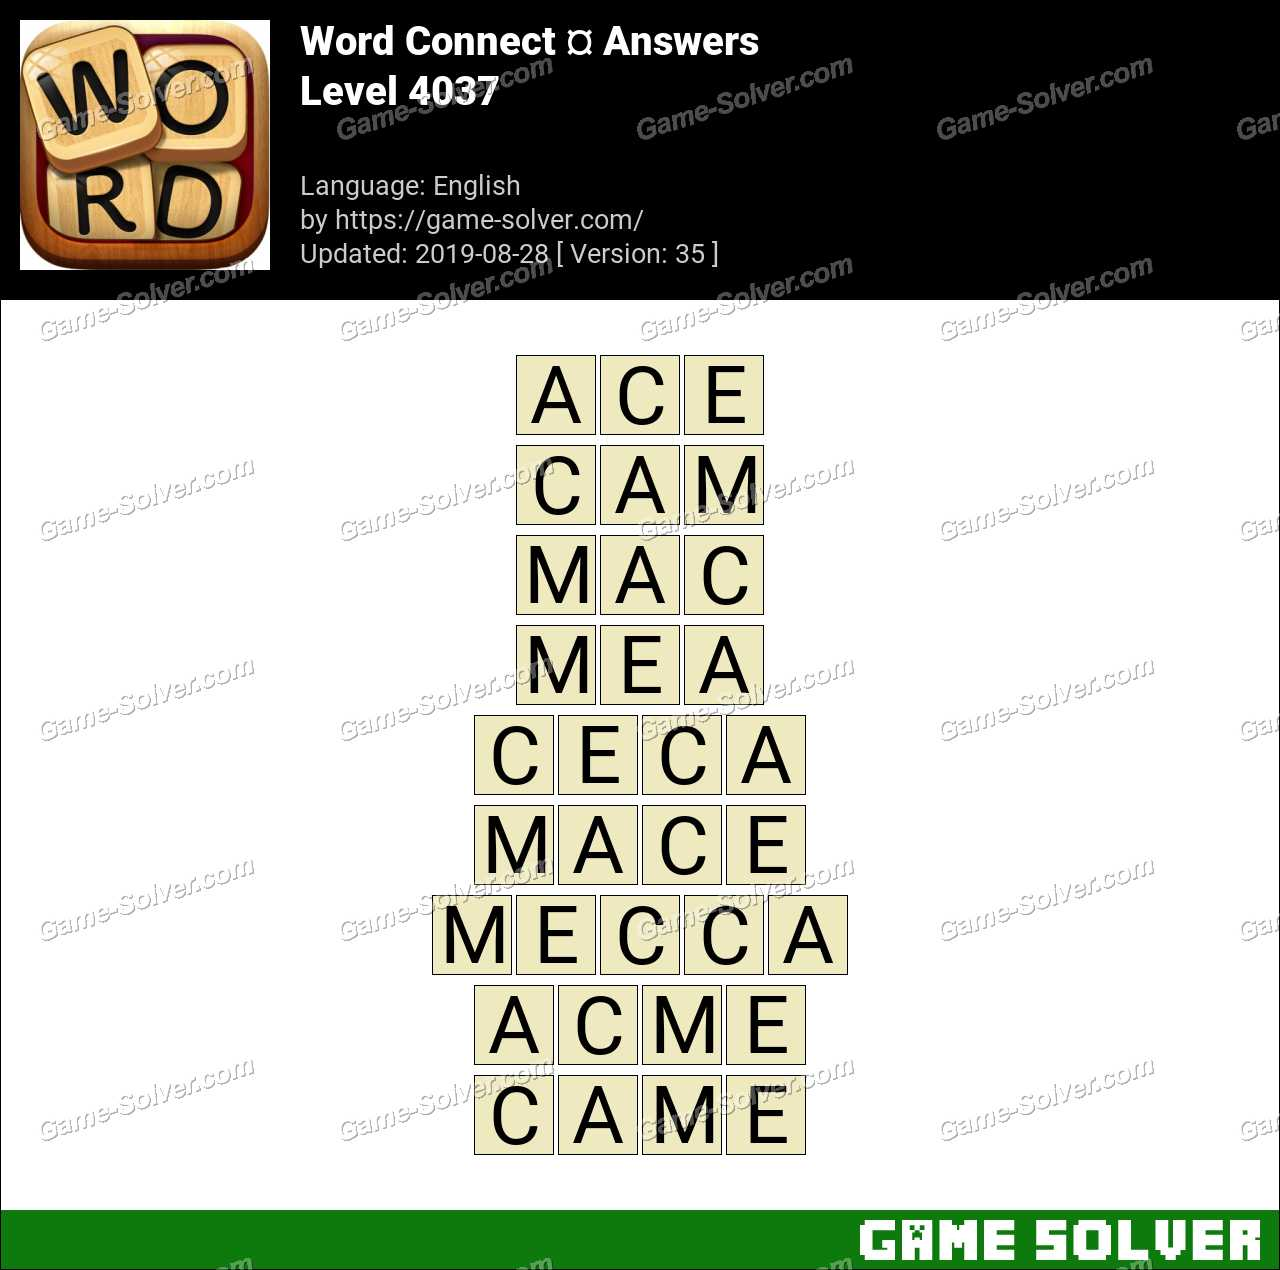 Word Connect Level 4037 Answers